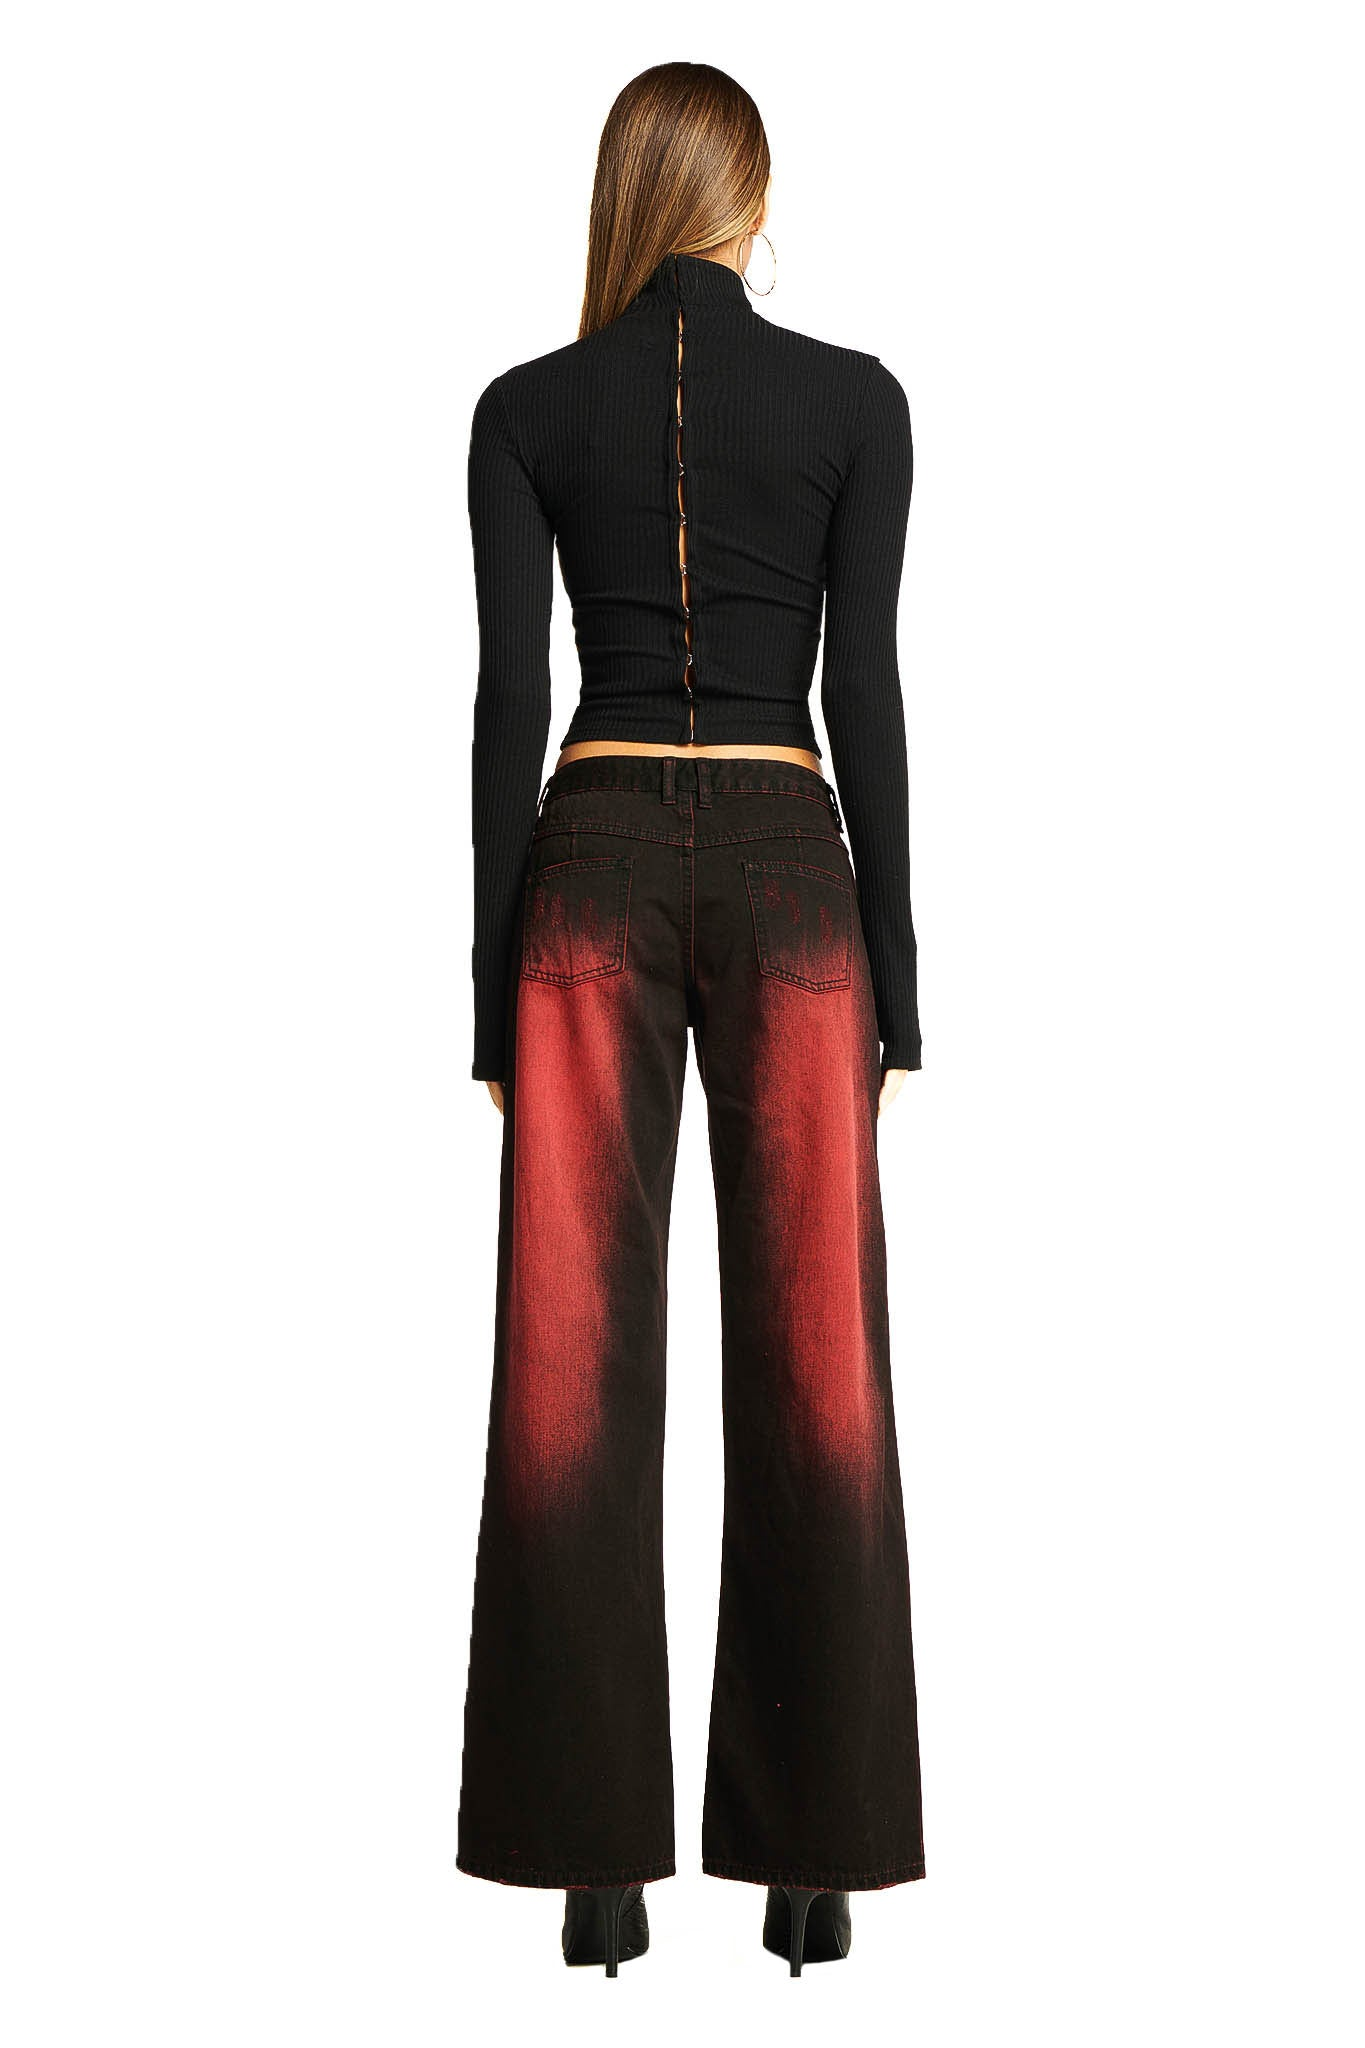 RENIA TOP - BLACK/RED